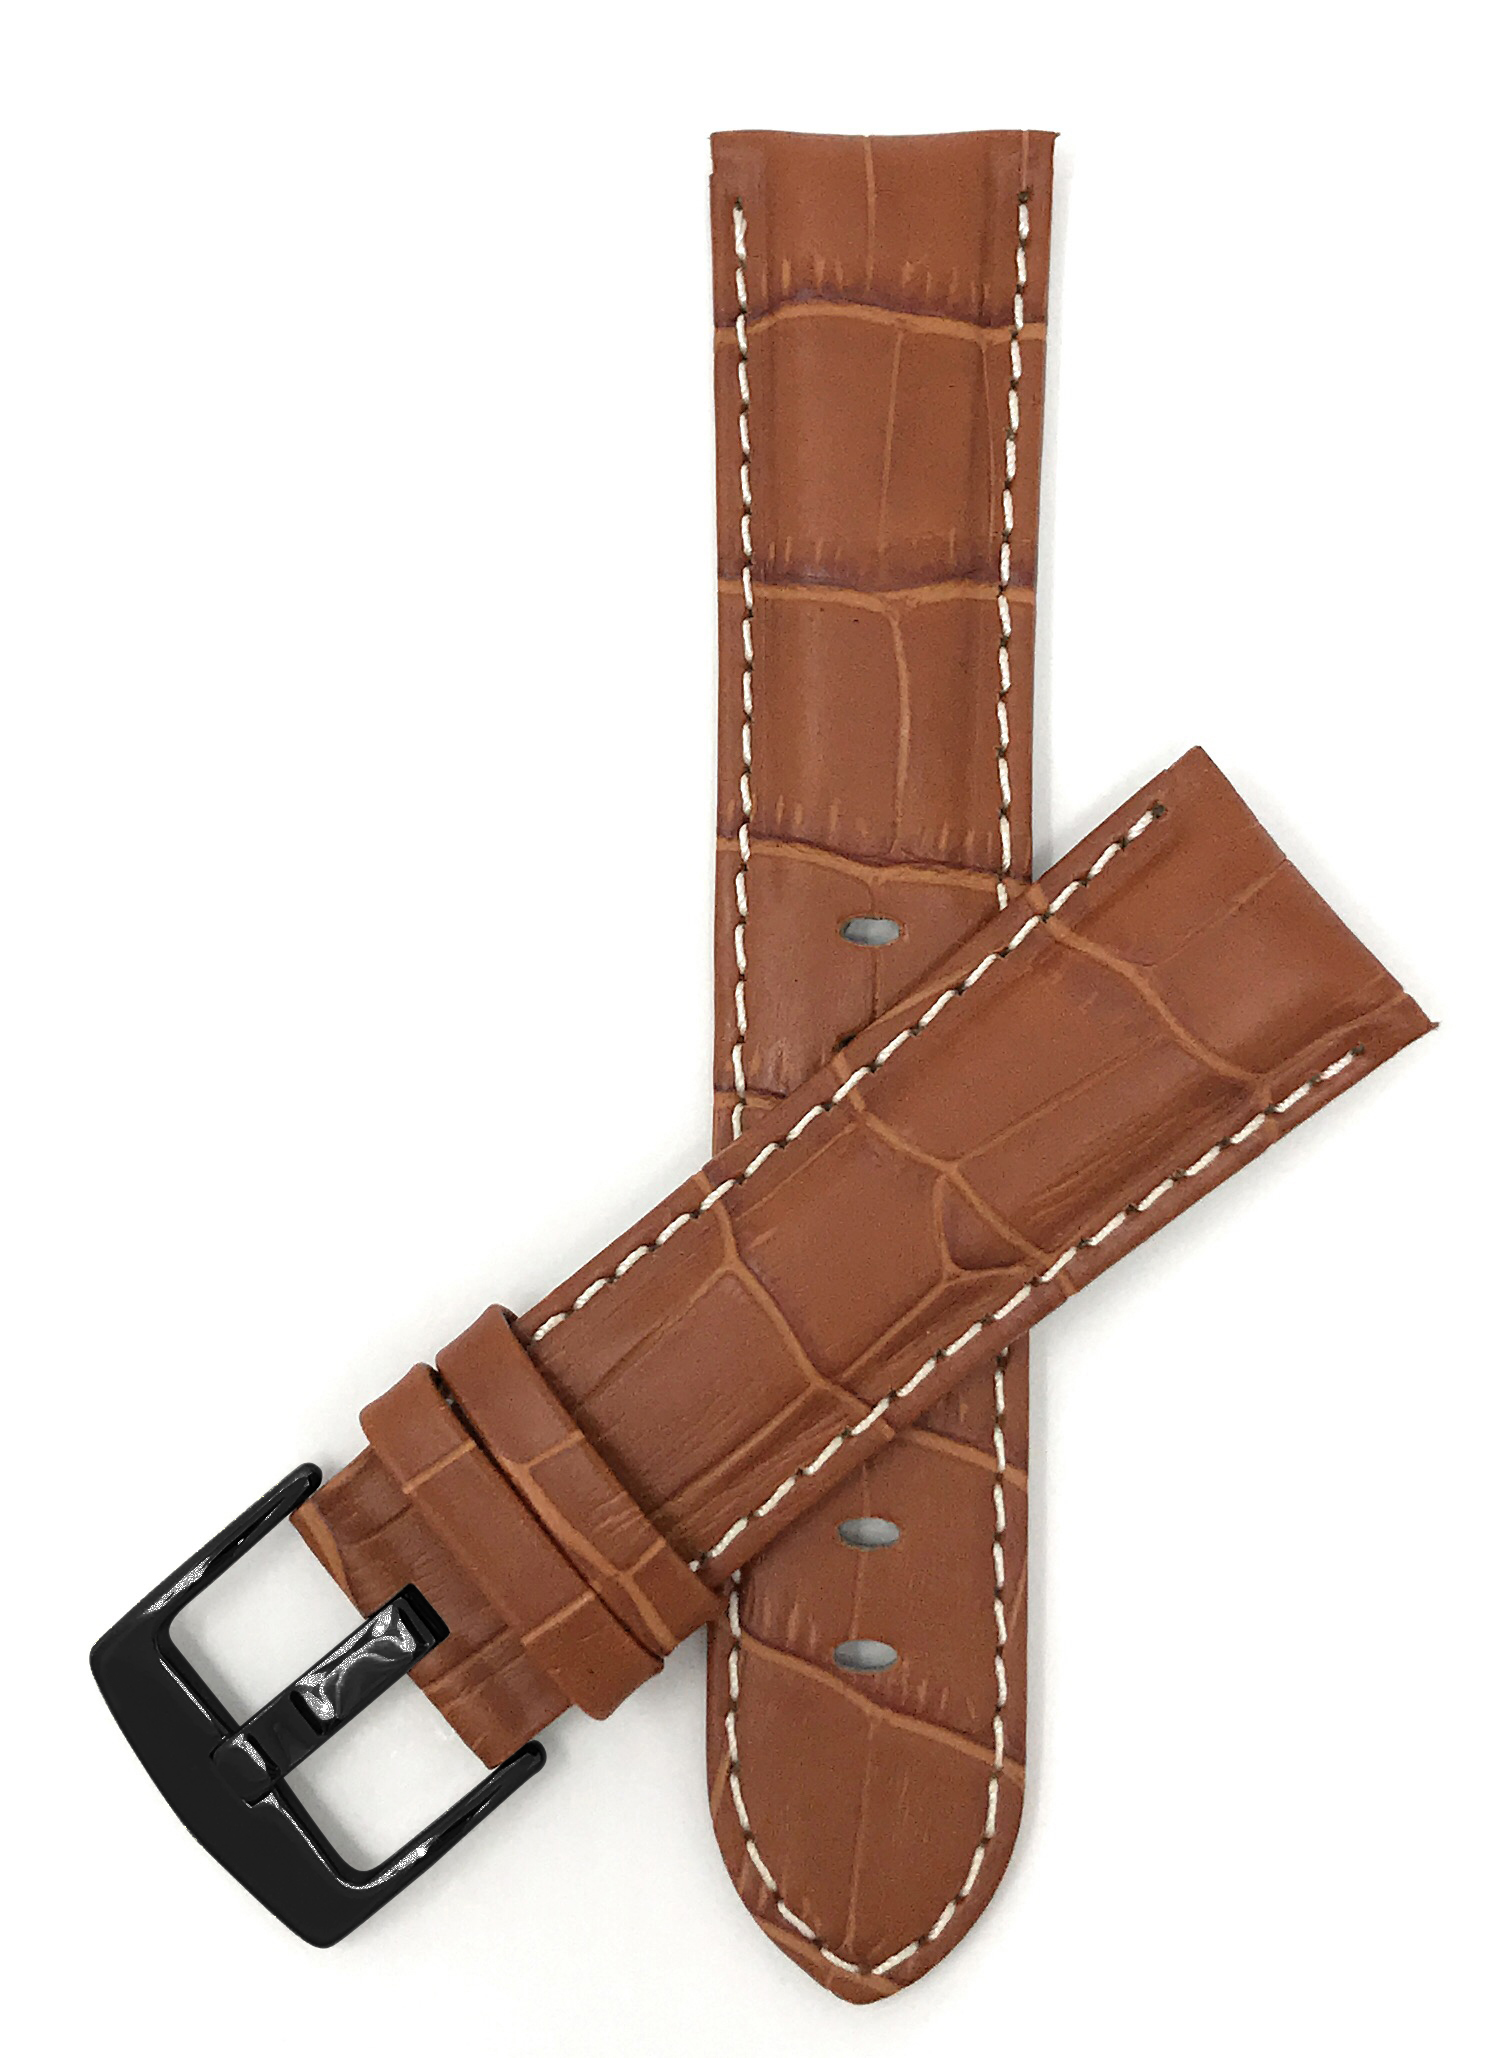 Bandini-Mens-Watch-Band-Alligator-Style-Leather-Strap-18mm-26mm-15-Colors thumbnail 78